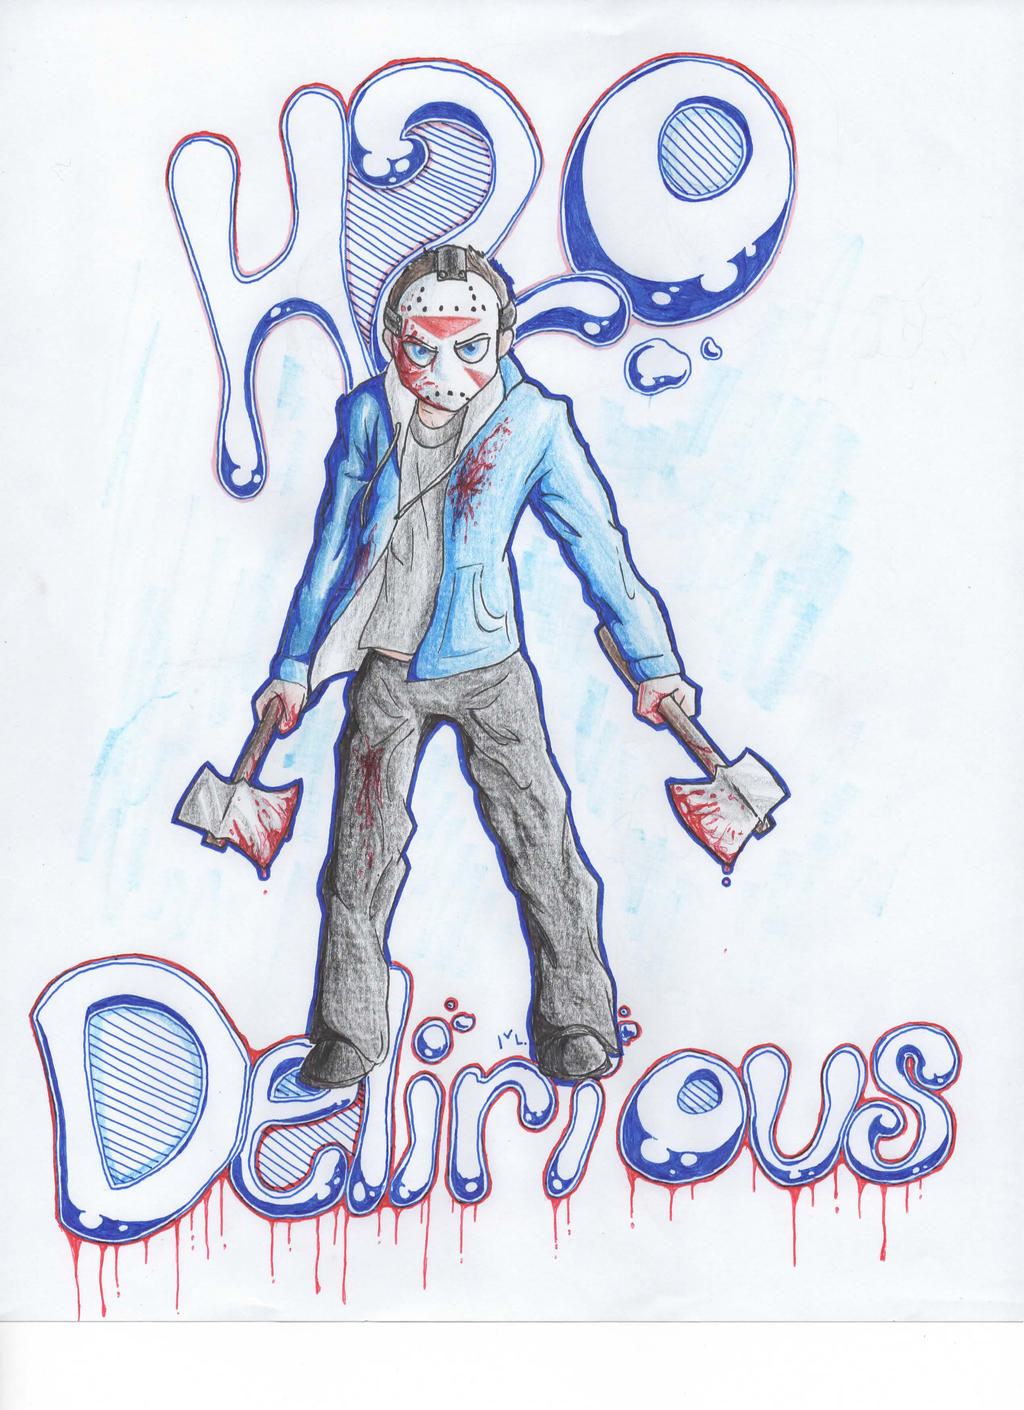 The Amazing Delirious by Sn0wyAnGel on DeviantArt H20 Delirious Drawings